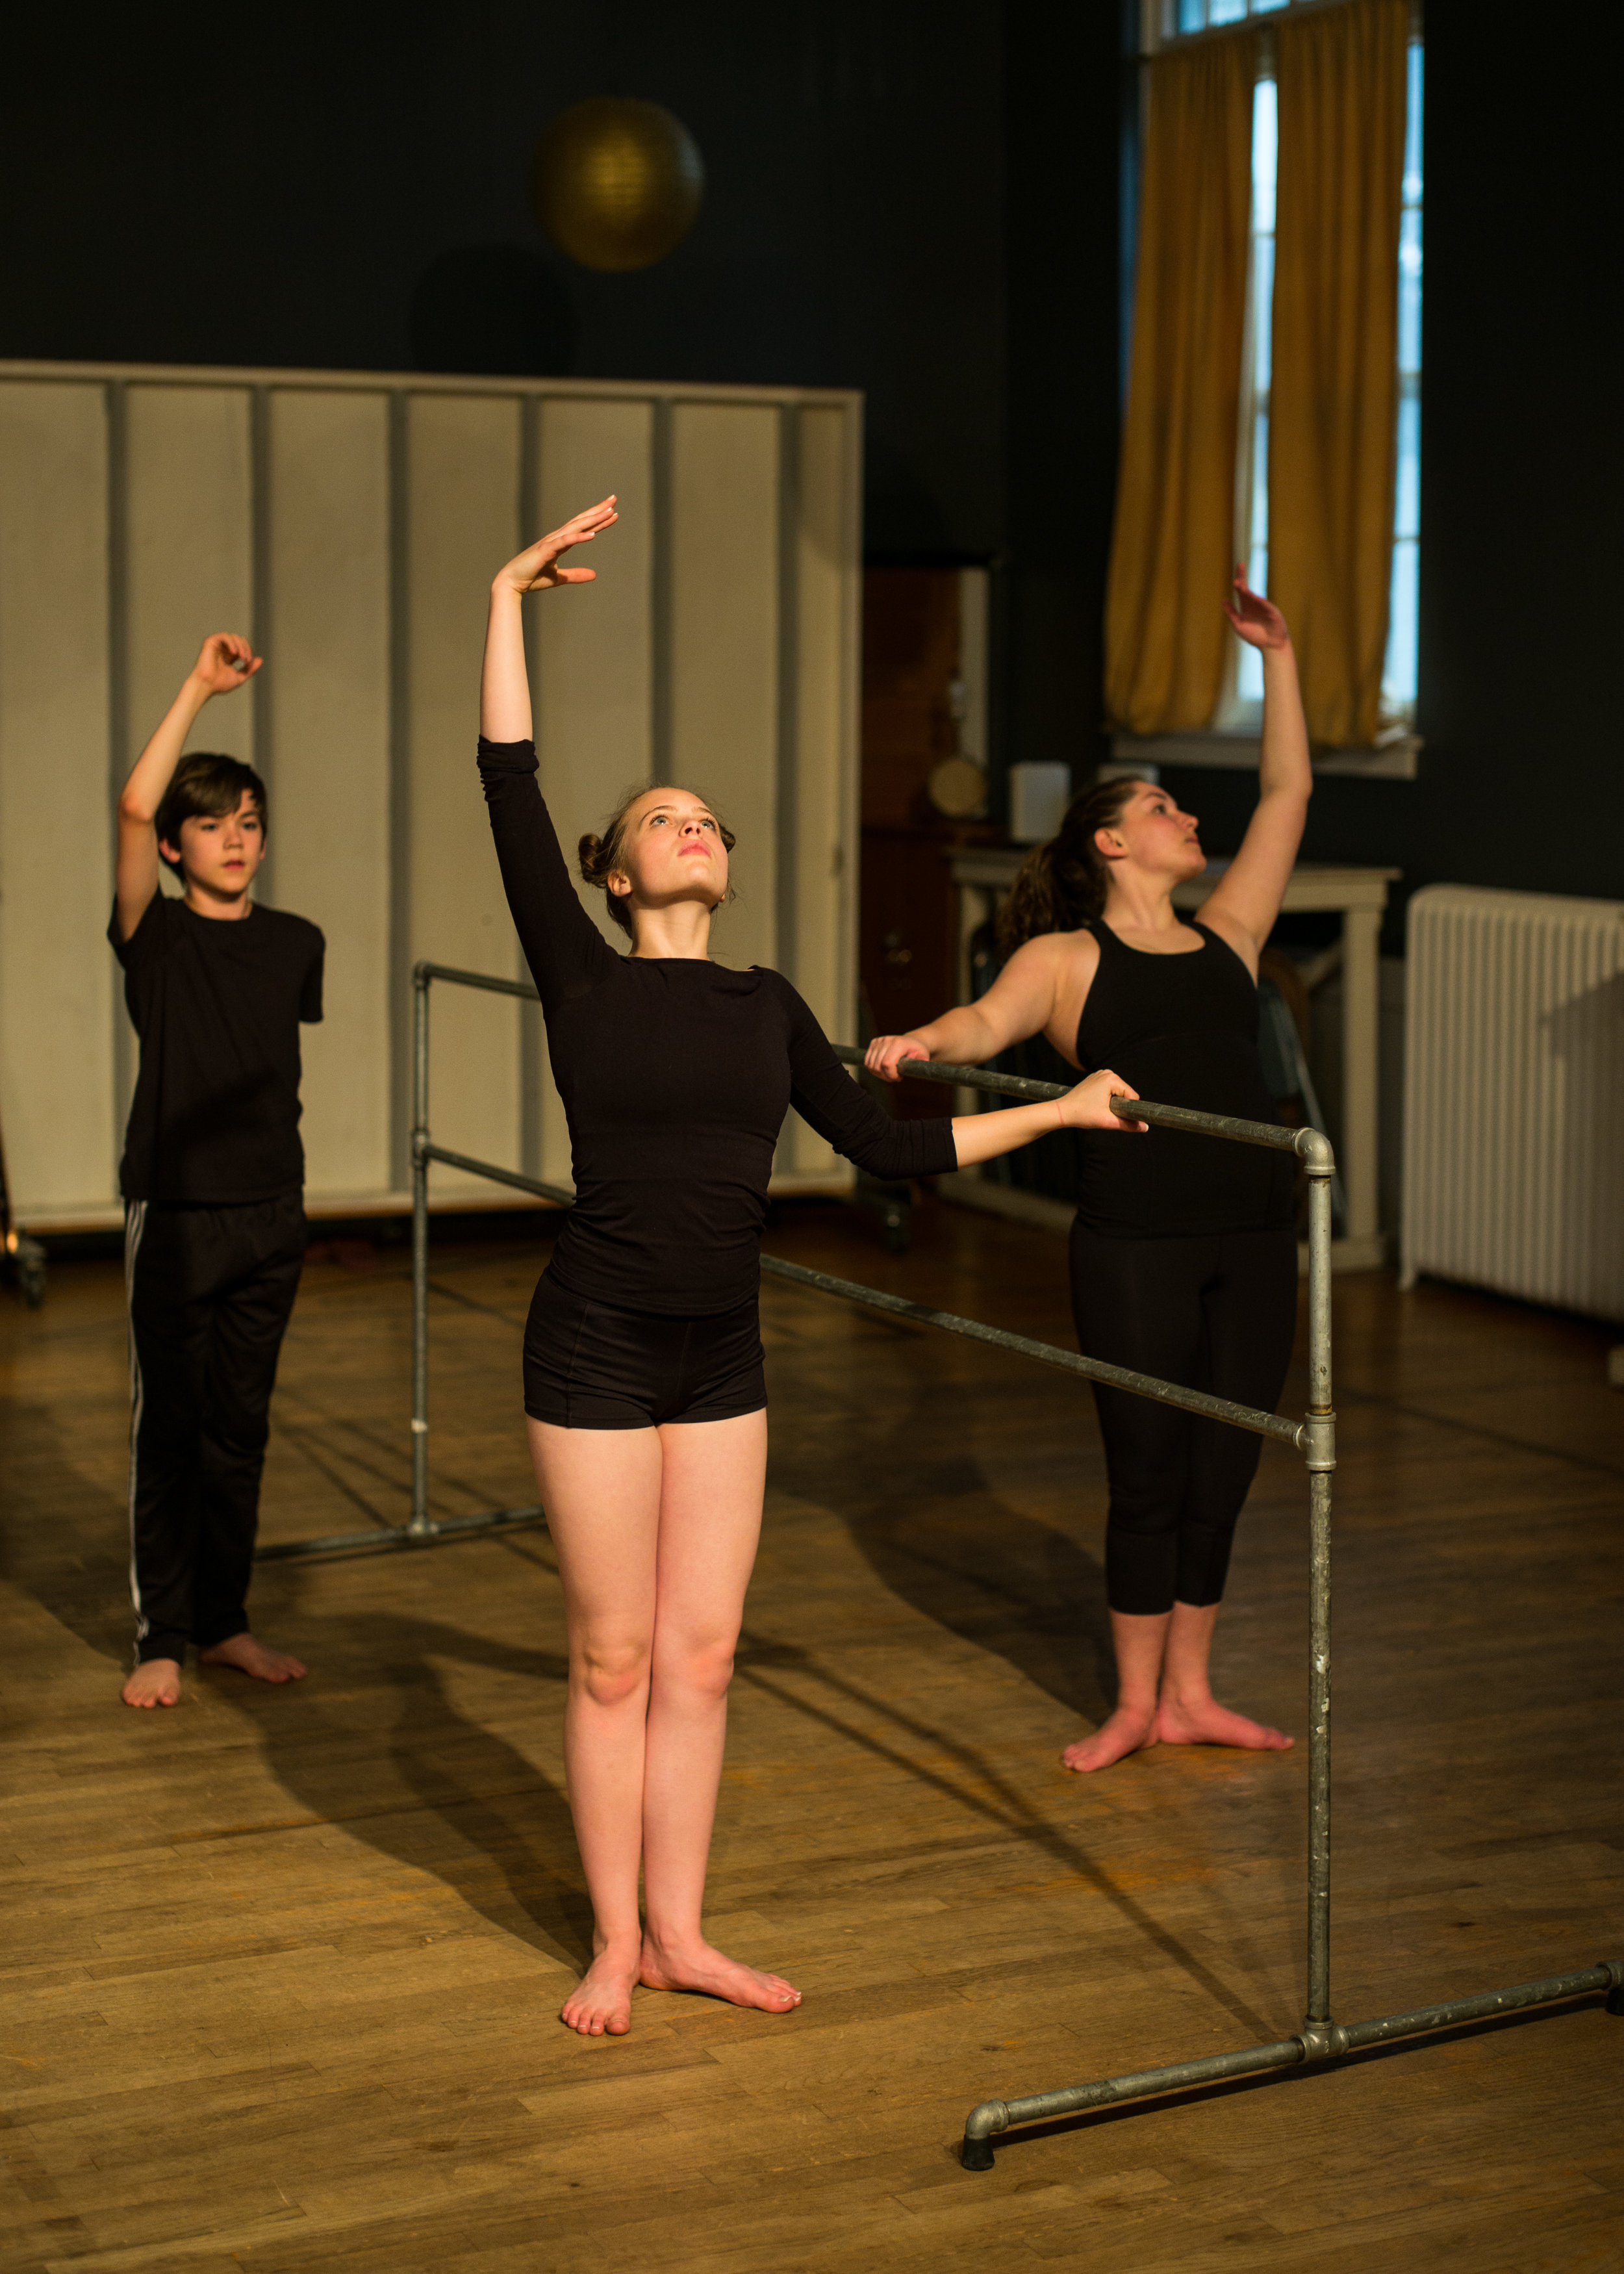 I use the form of ballet to create my lines and precision